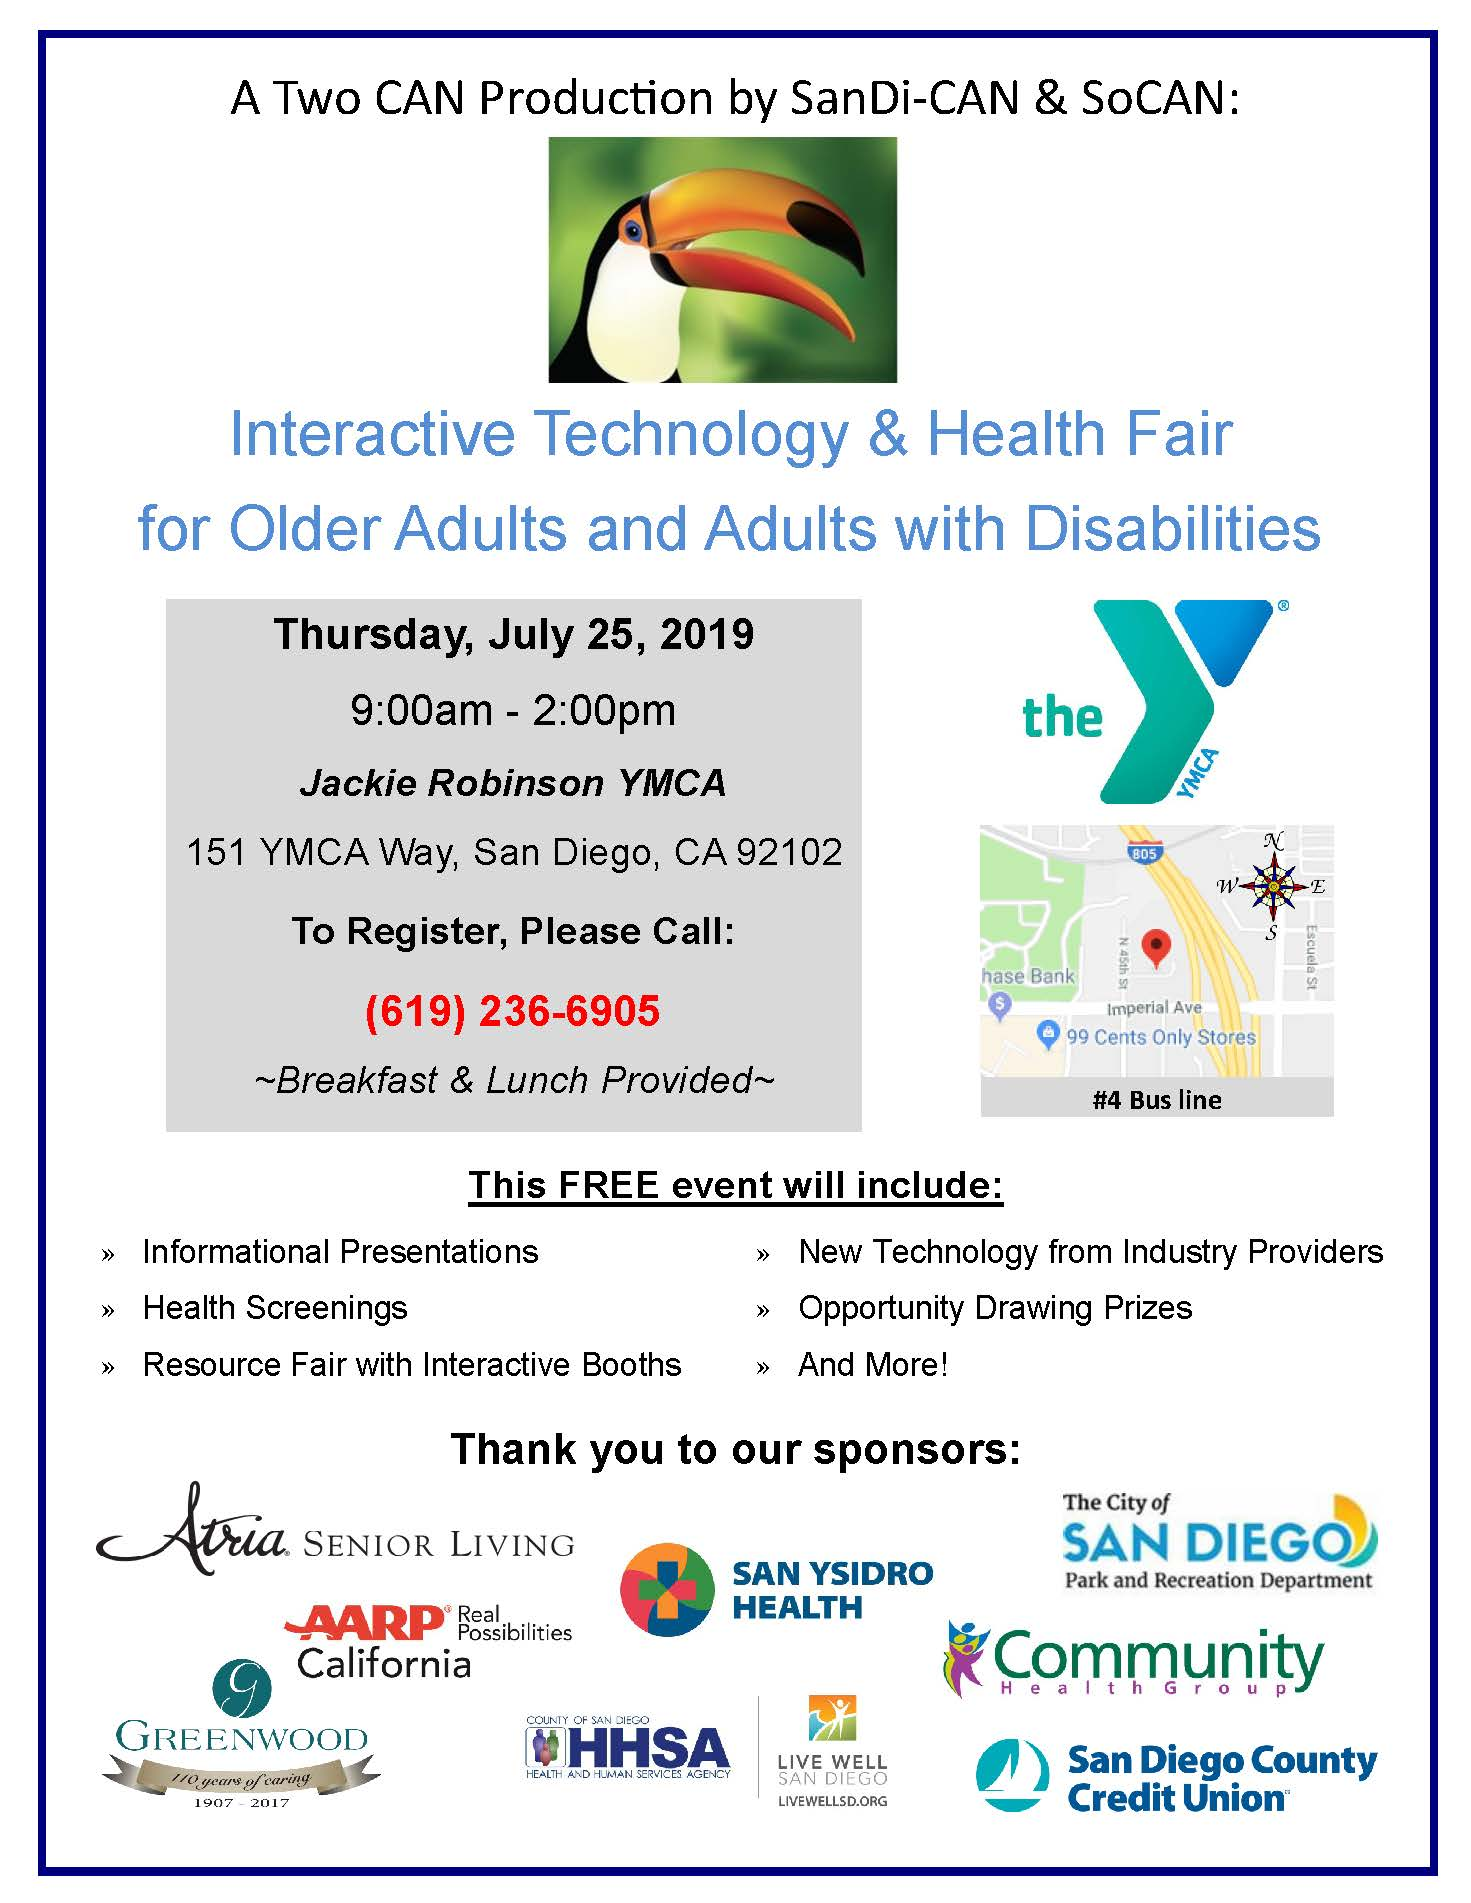 Interactive Technology & Health fair for Older Adults and Adults with Disabilities